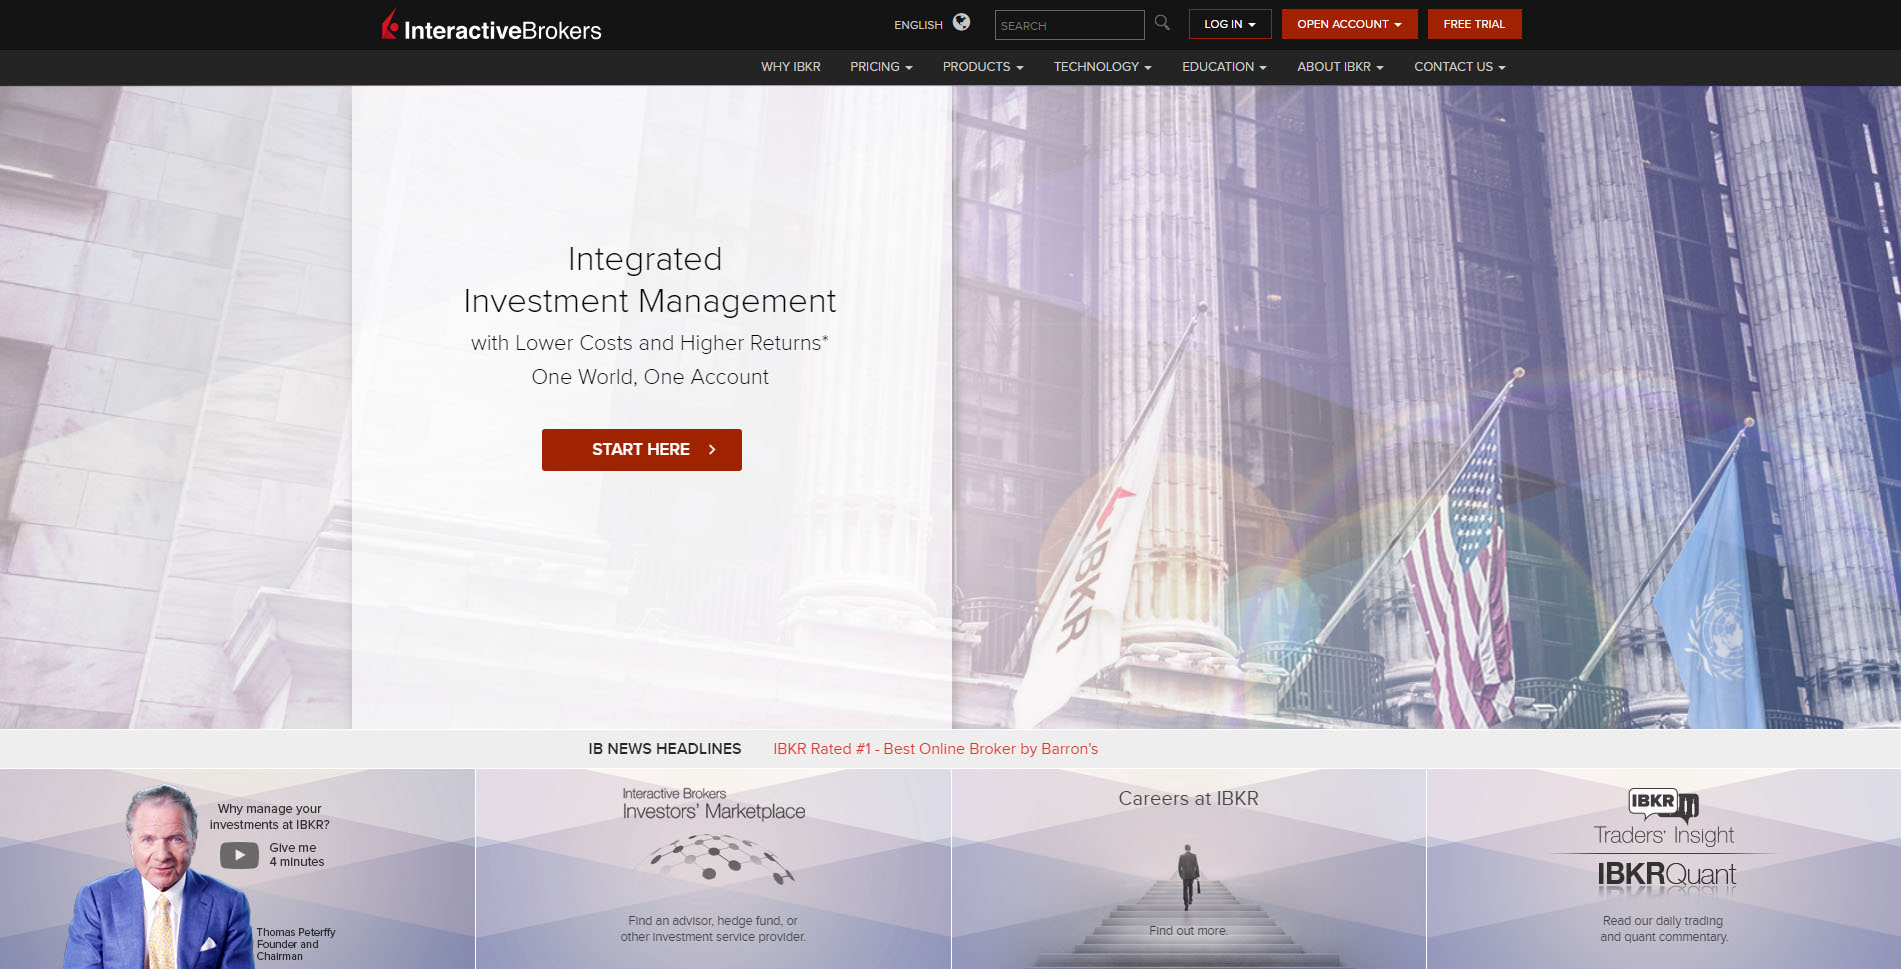 Interactive Brokers (interactivebrokers.com)